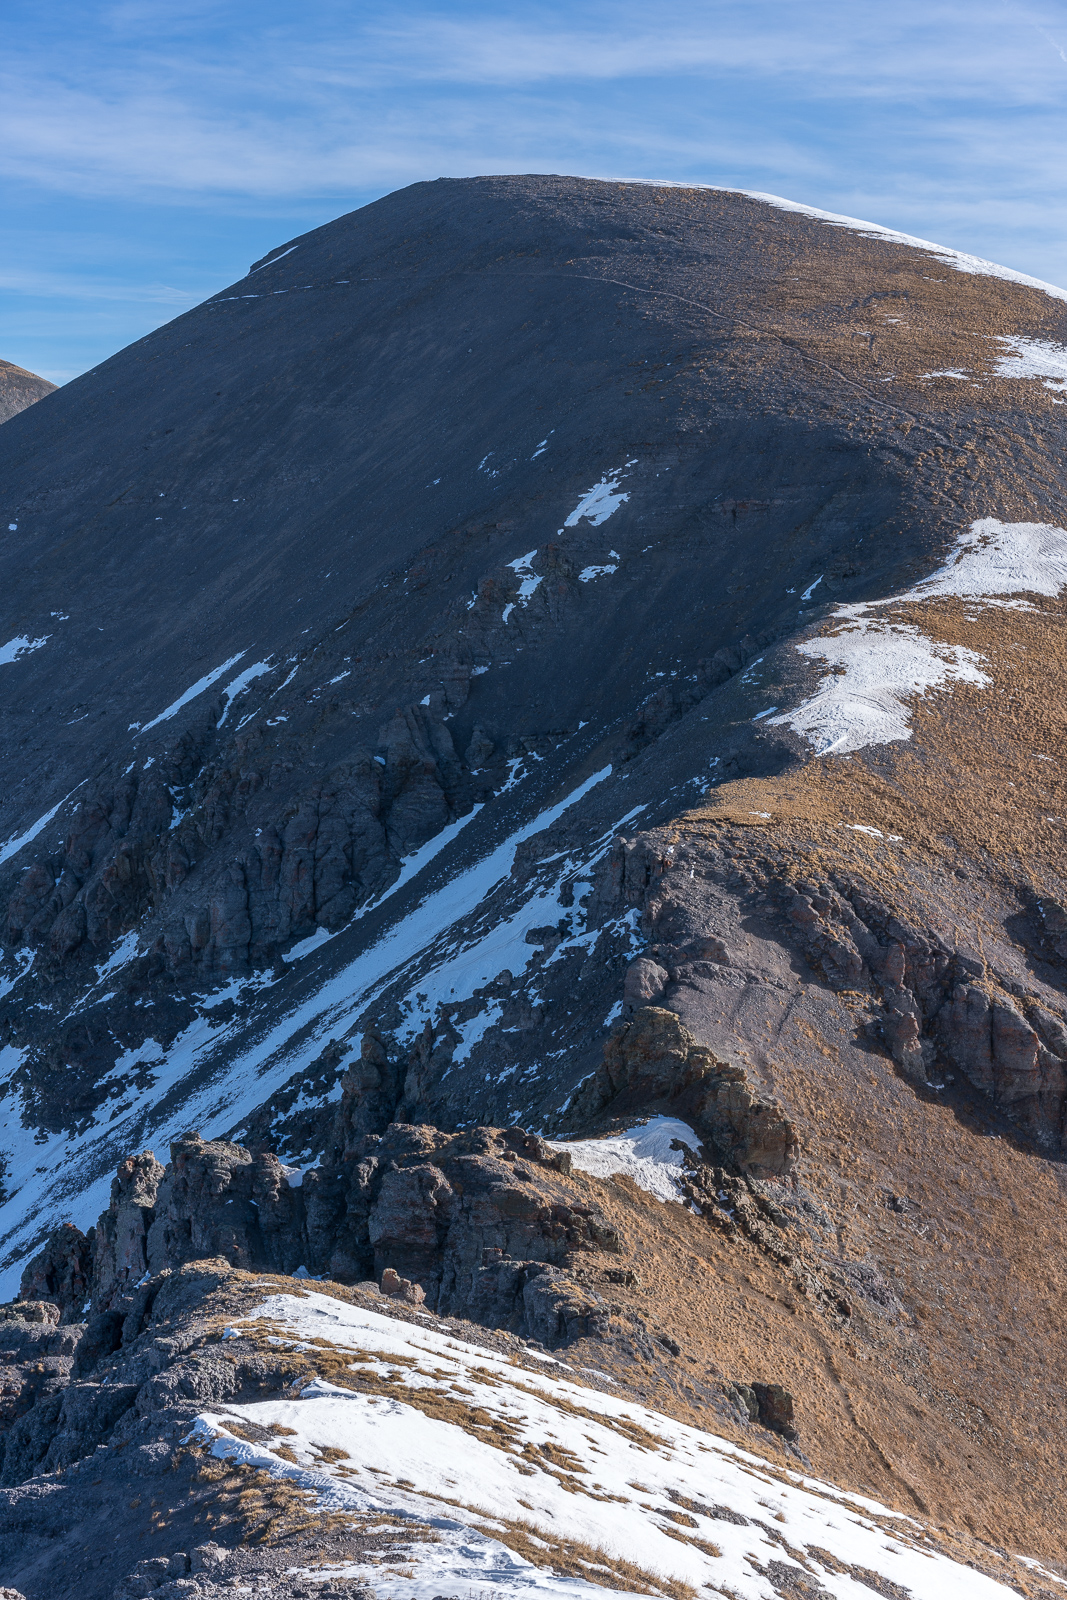 Spencer Peak from UN 12,899